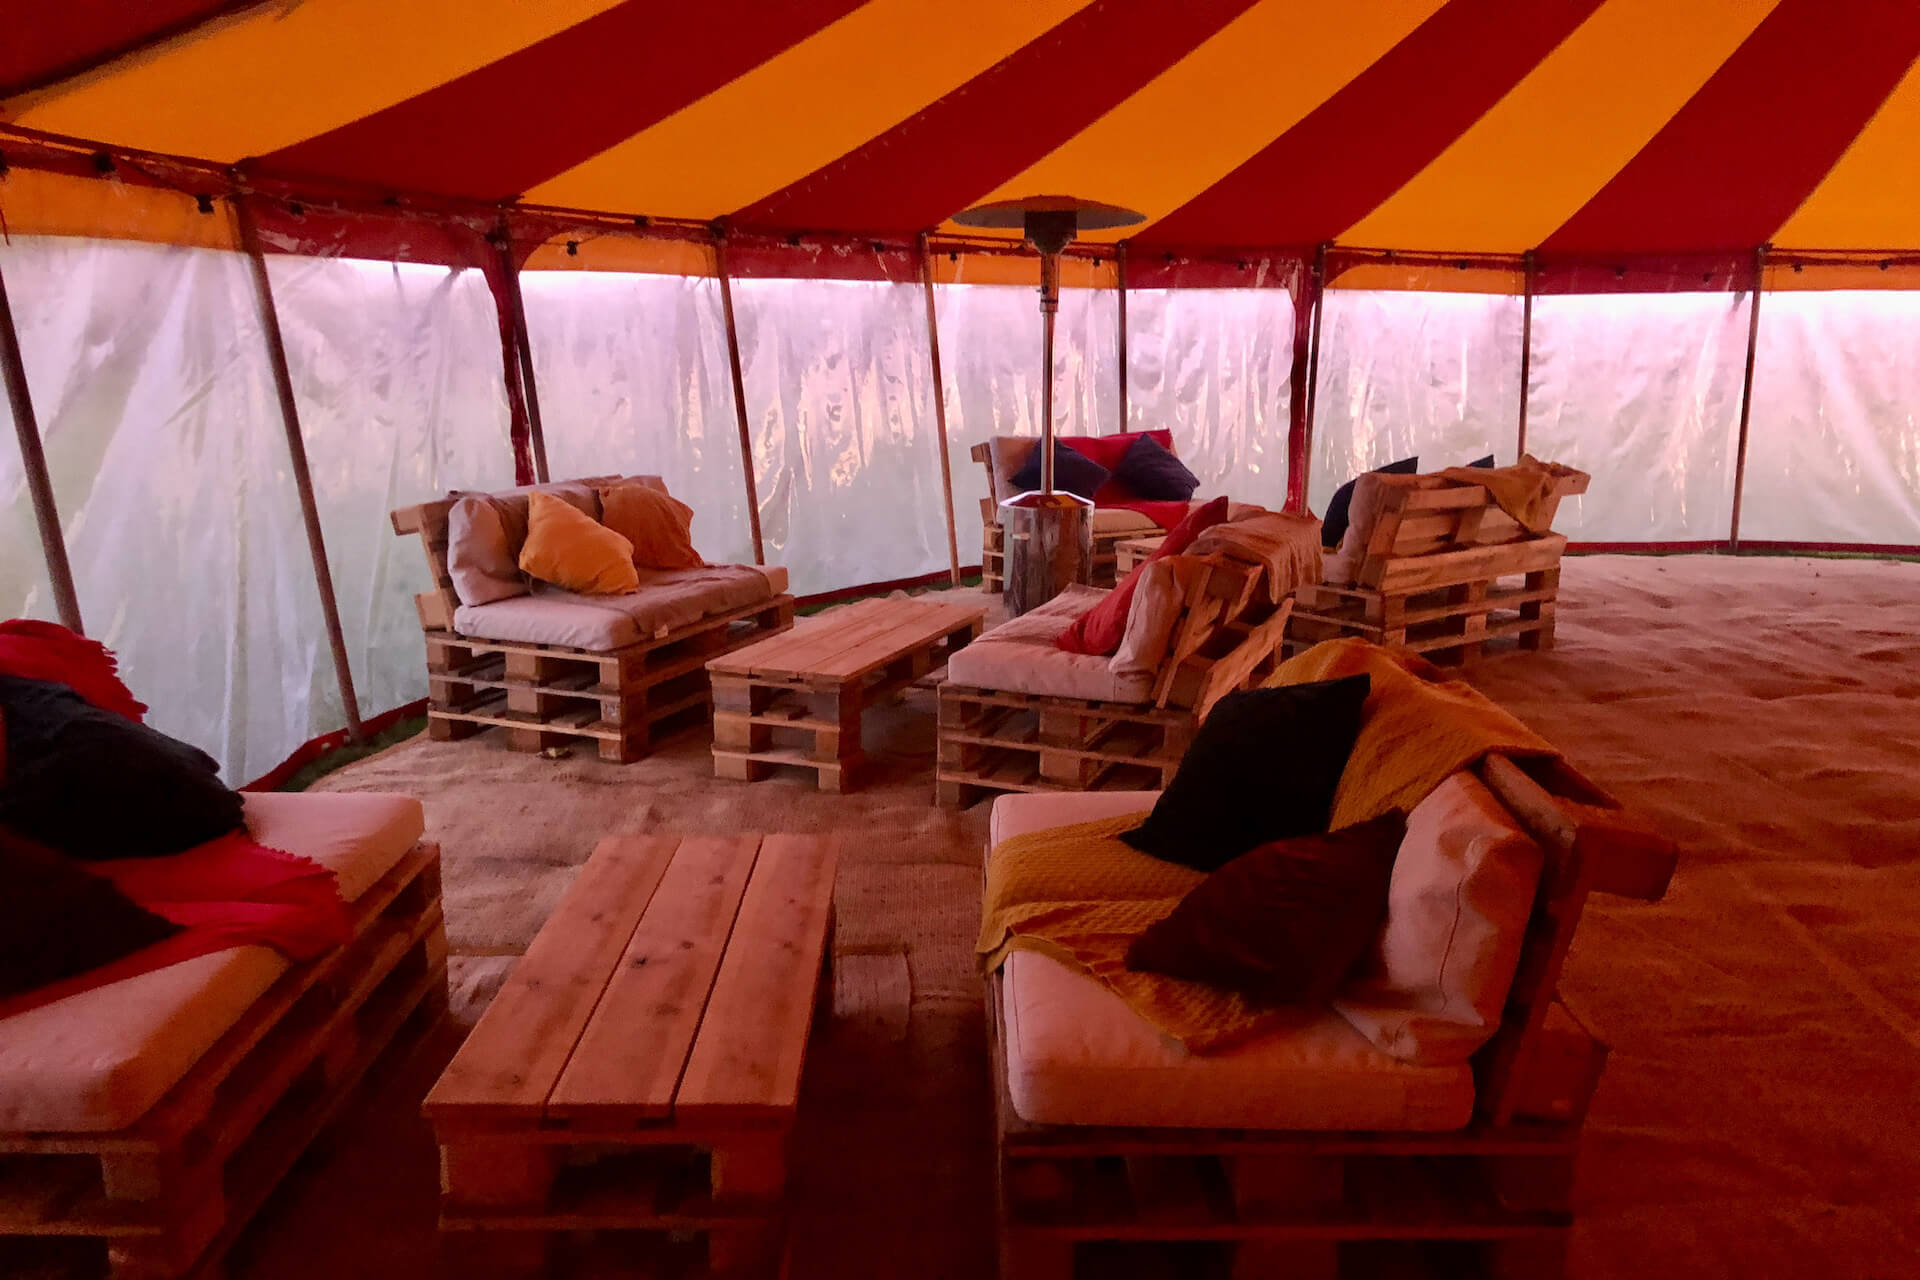 DIY pallet furniture for wedding party tent in Dorset